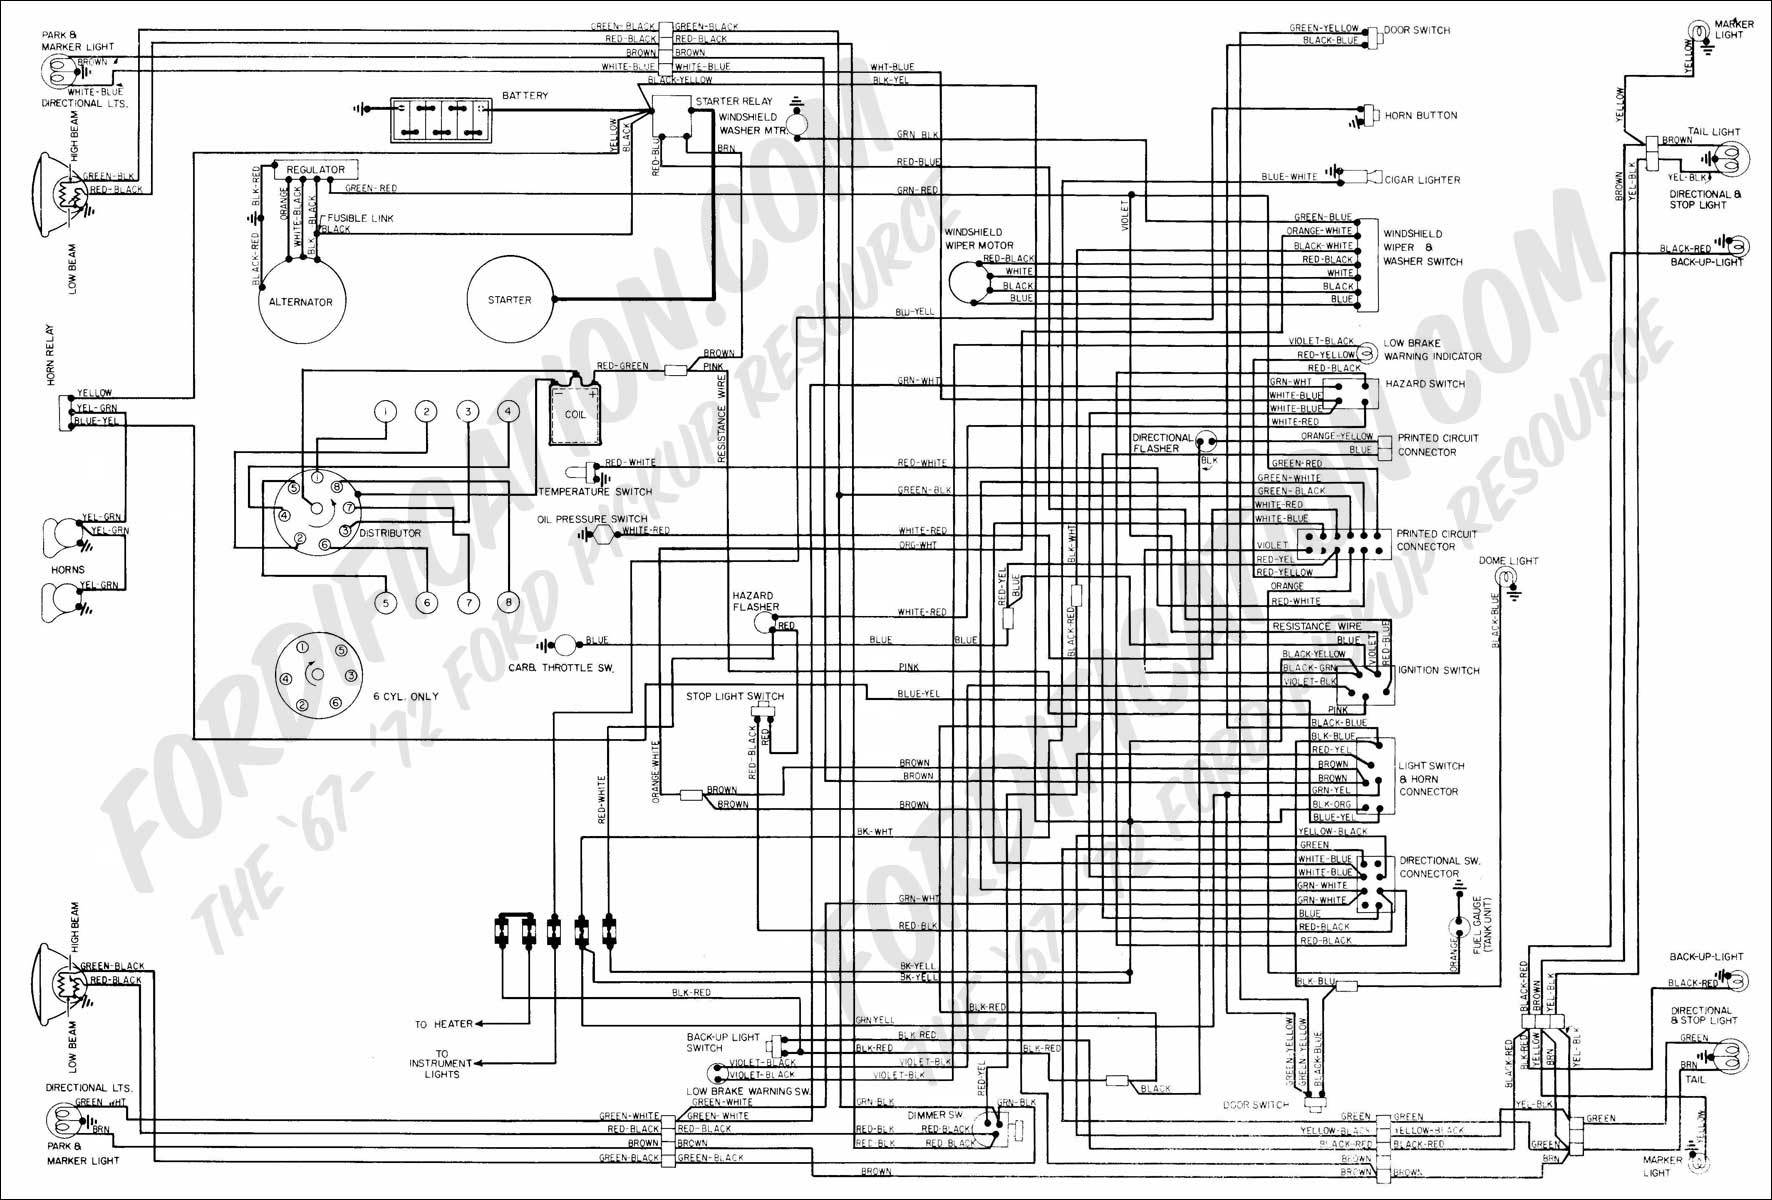 2006 toyota avalon ignition coil diagram 94 dodge dakota stereo wiring ford edge free engine image